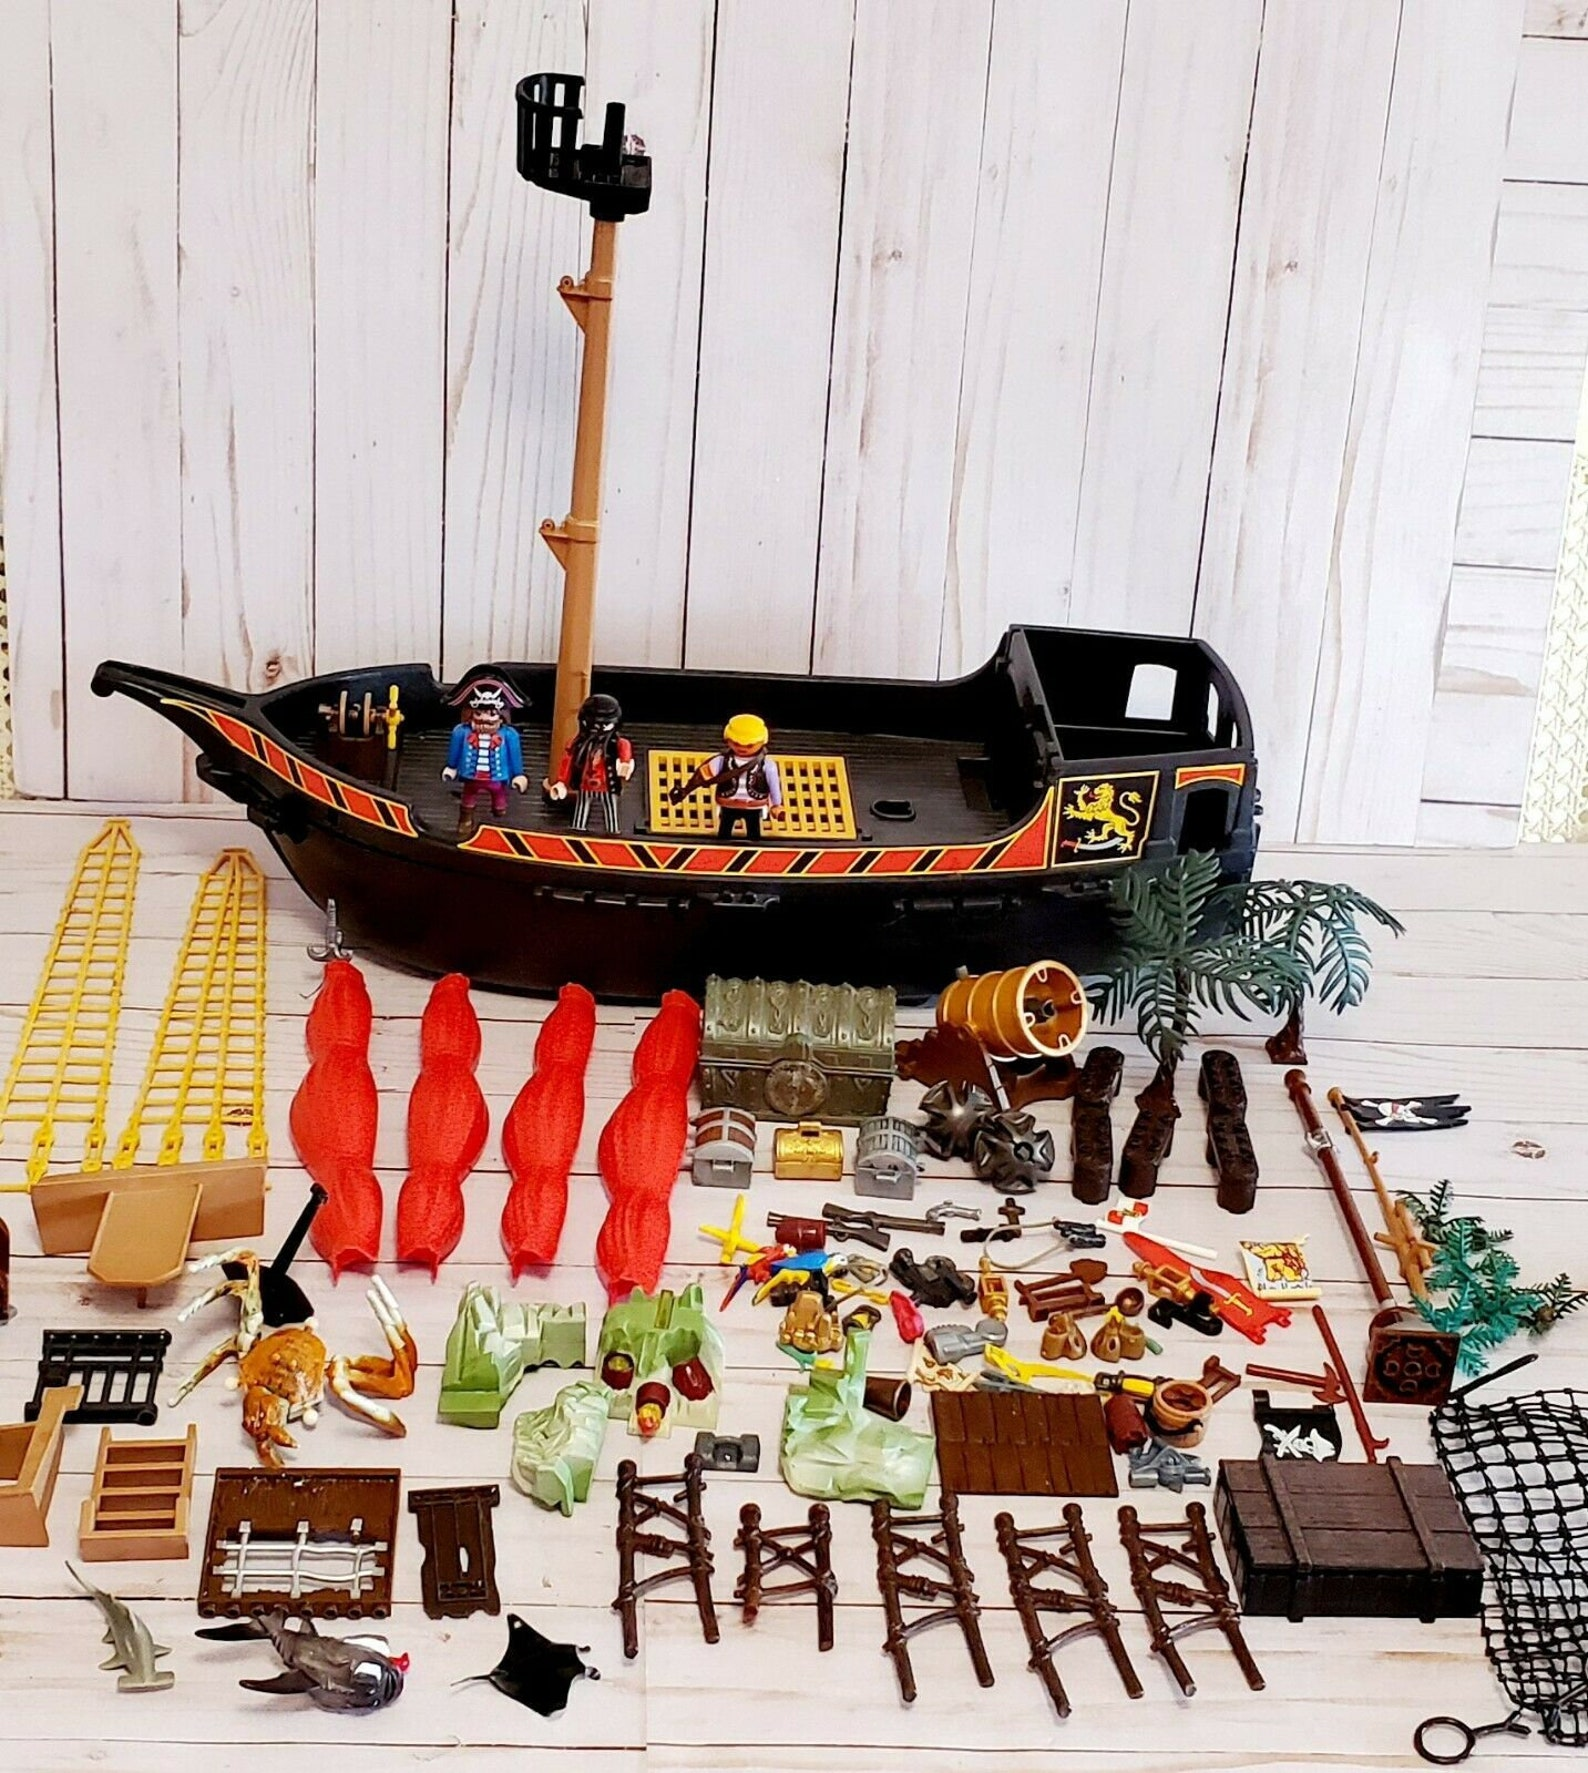 Vintage Playmobil 5736 Blackbeards Pirate Ship incomplete and Huge Lot of Accessories - 1978 Geobra for Parts